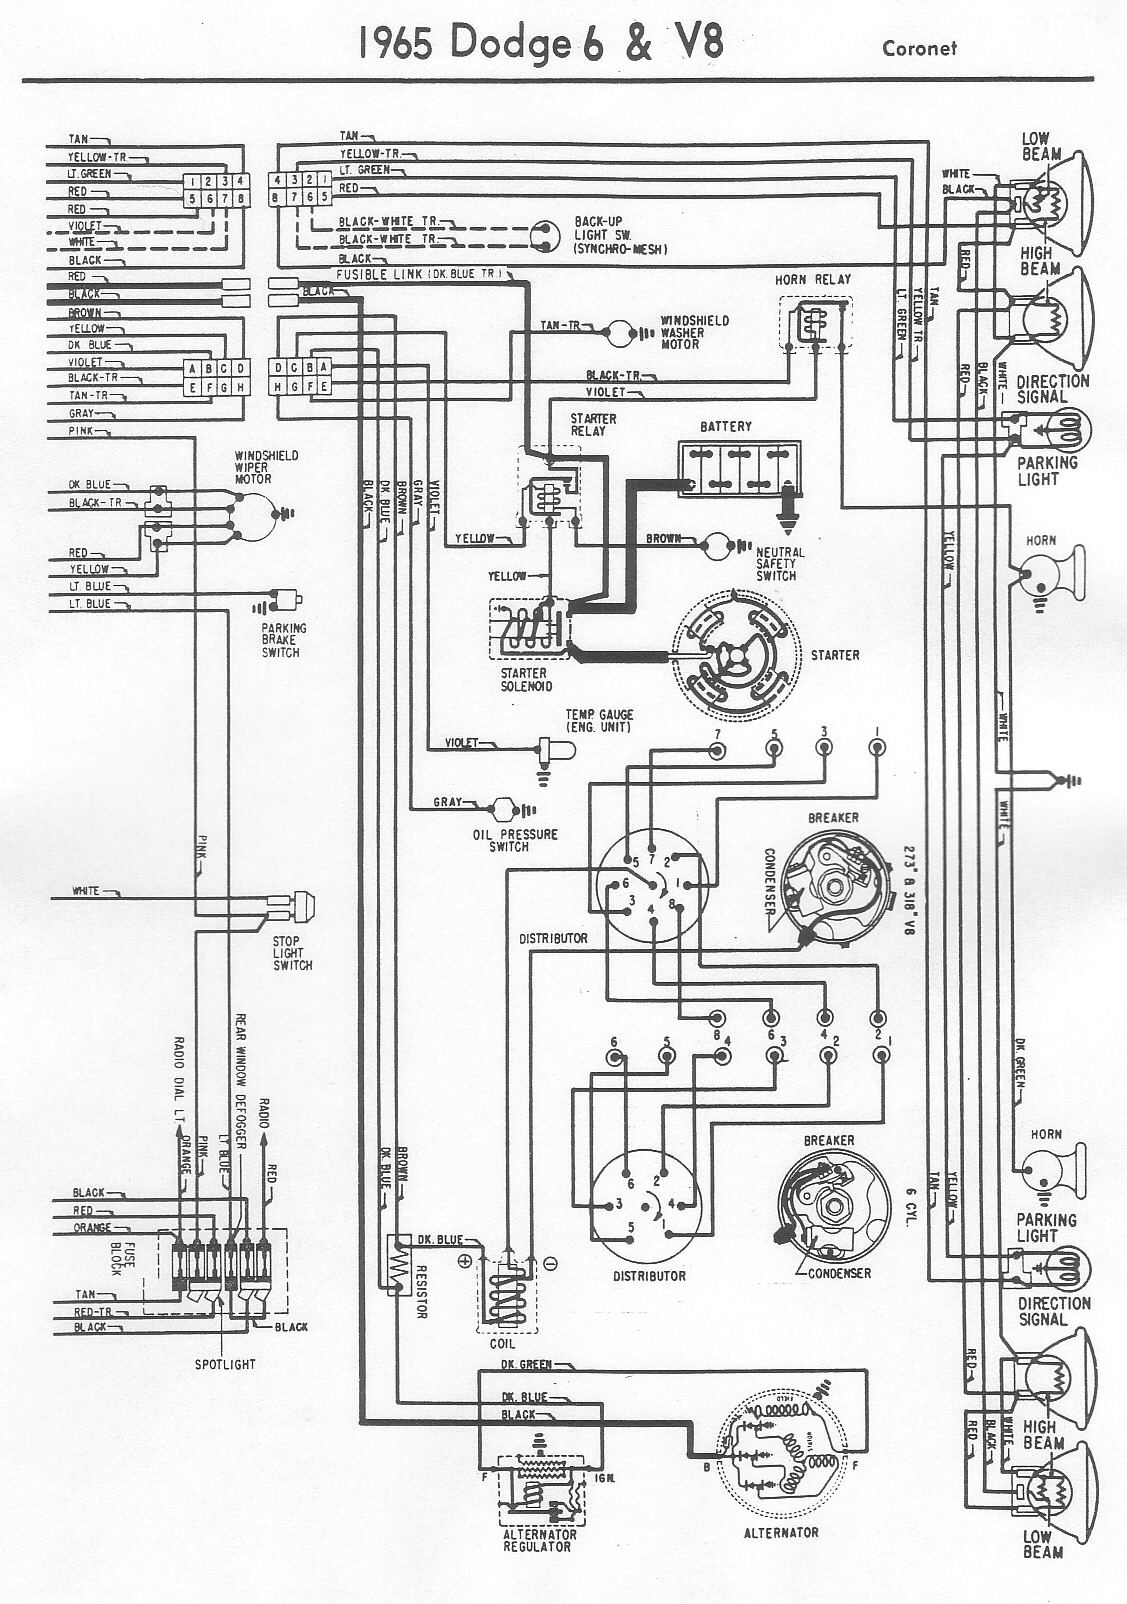 small resolution of wiring diagram for 1966 dodge coronet wiring diagram todays dodge wiring diagram wires 1964 dodge coronet